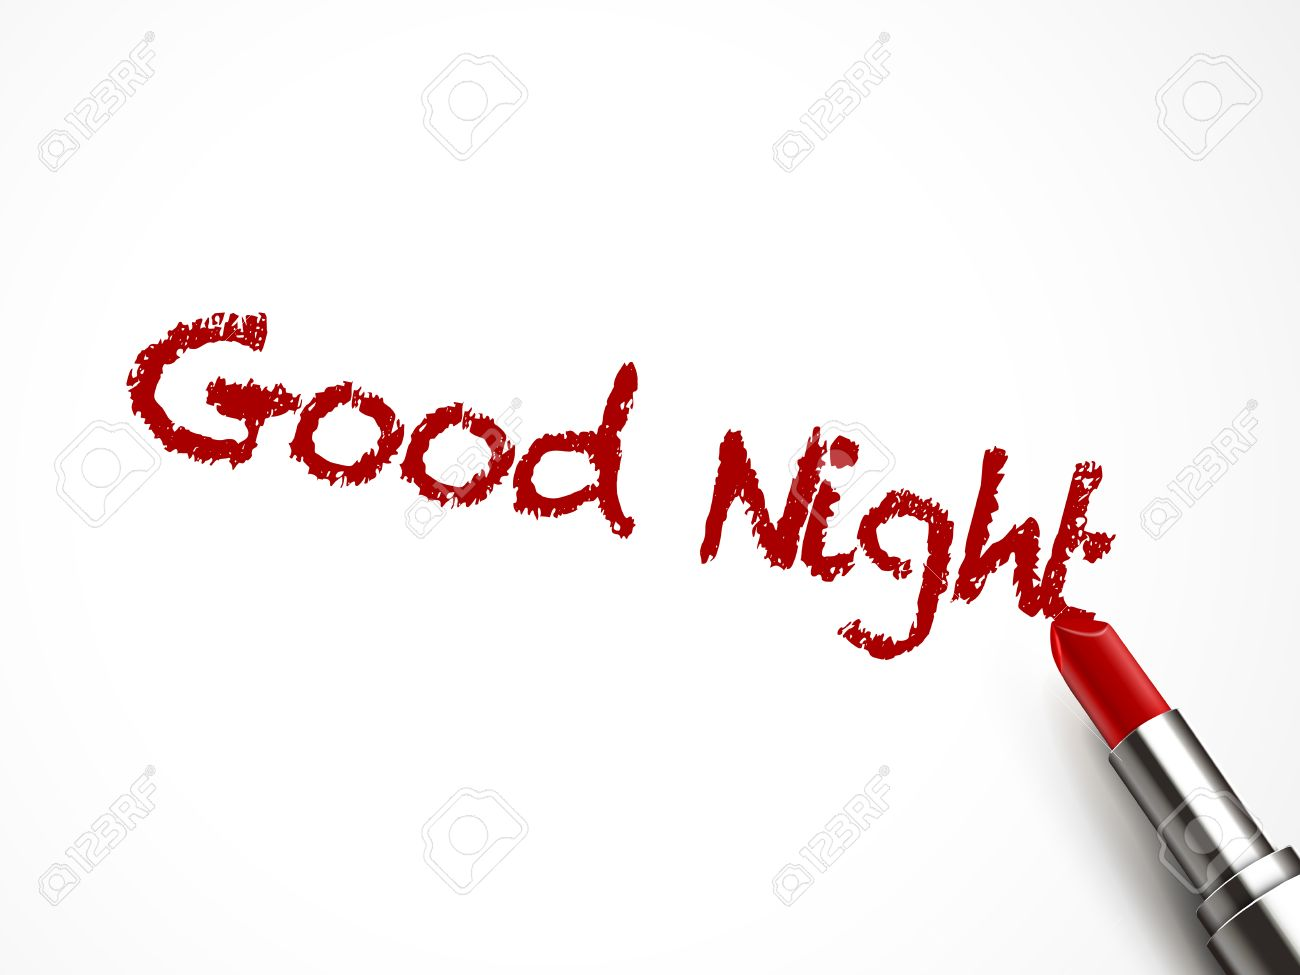 Good Night Words Written By Red Lipstick On White Background Royalty